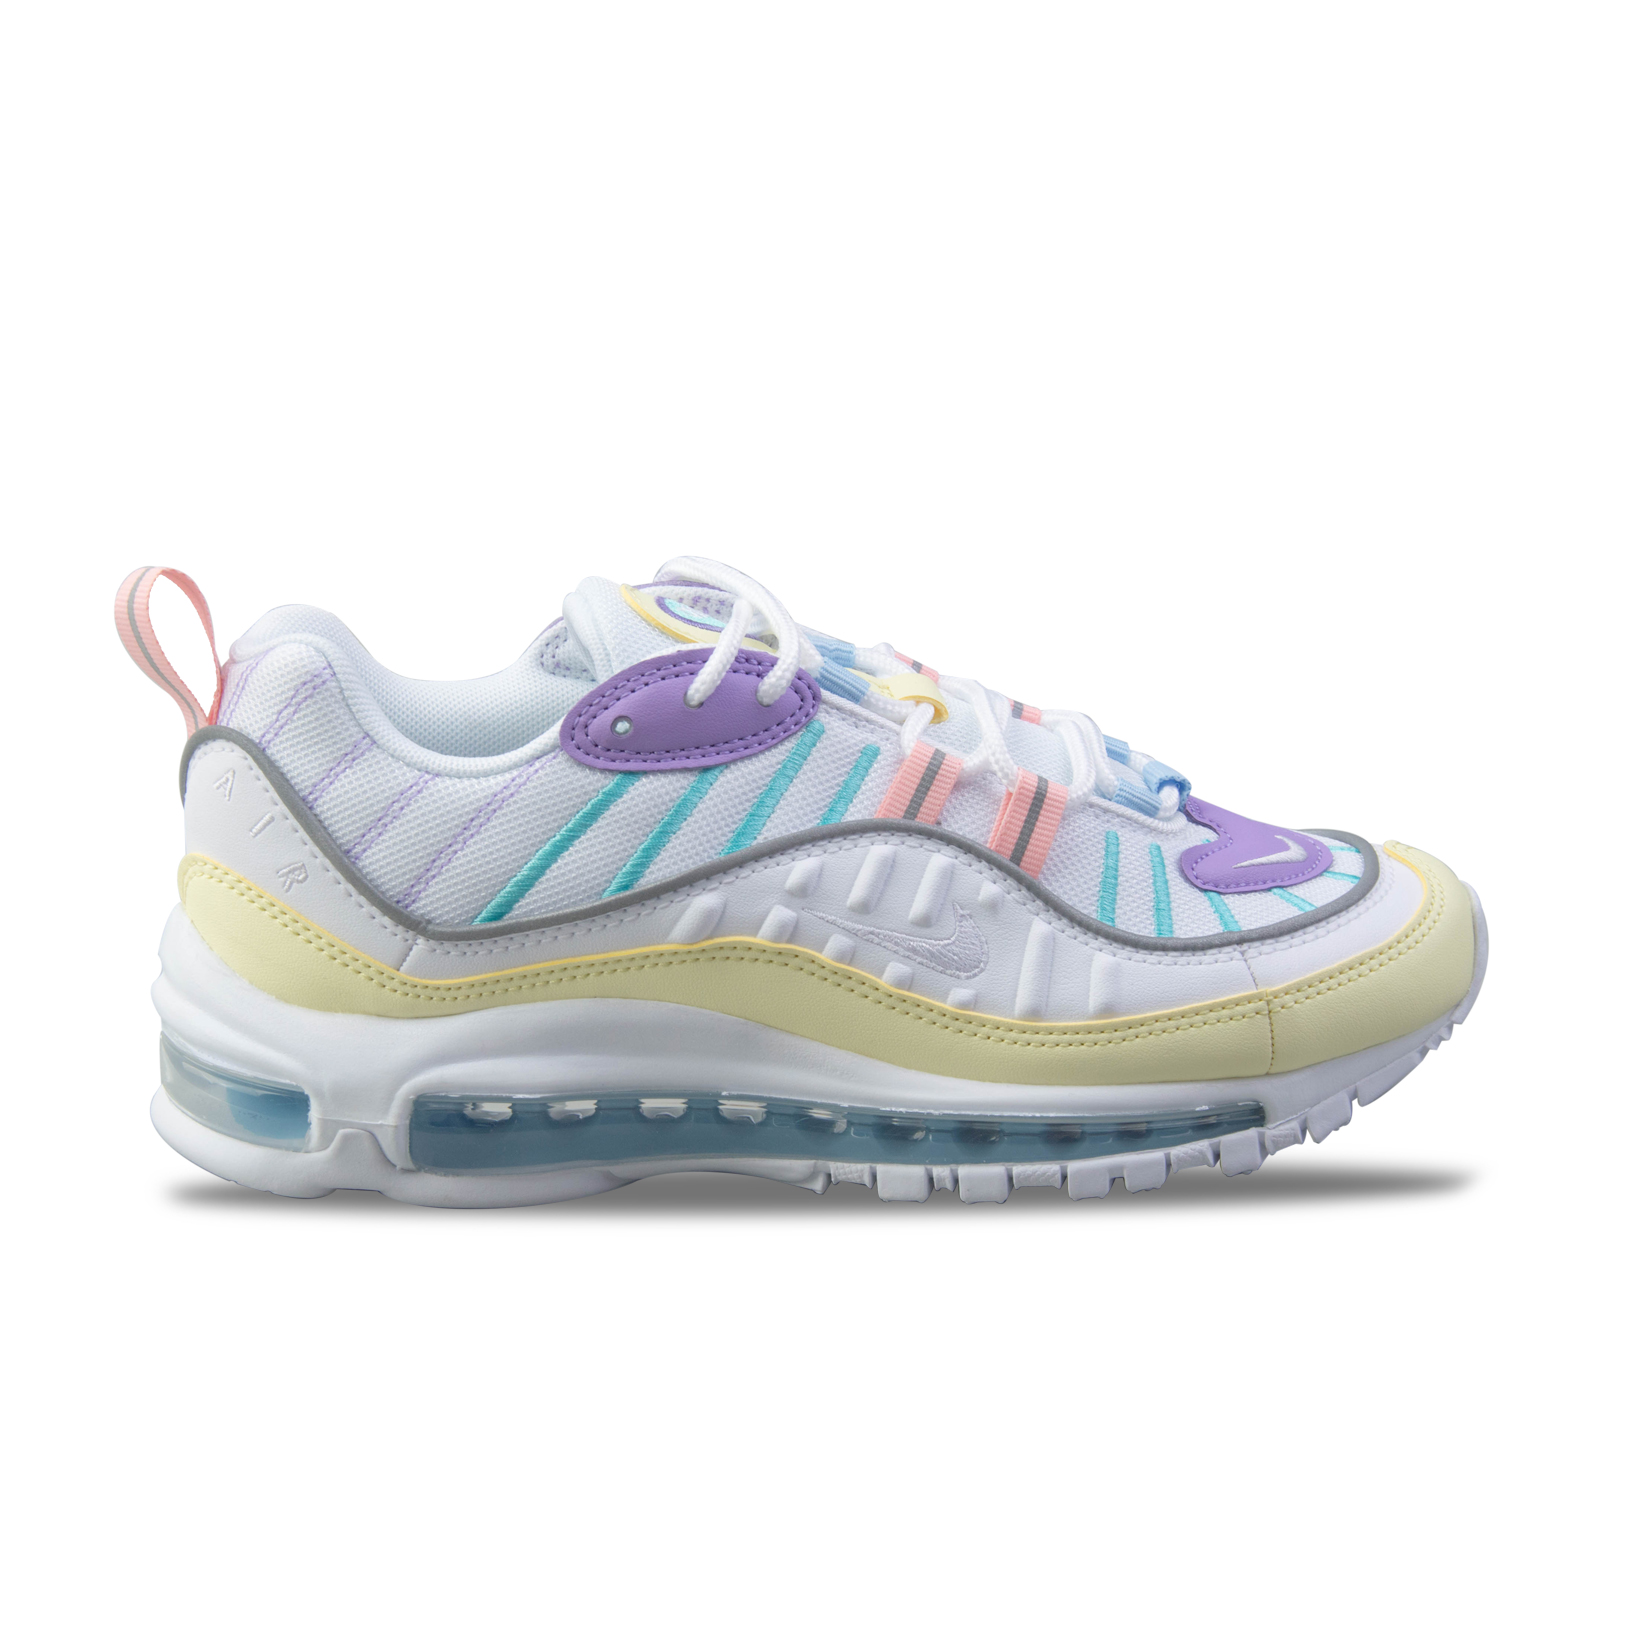 cheap for discount c46aa c871e Unisex Shoes Nike Air Max 98 White / Multicolor | All-Sports.gr